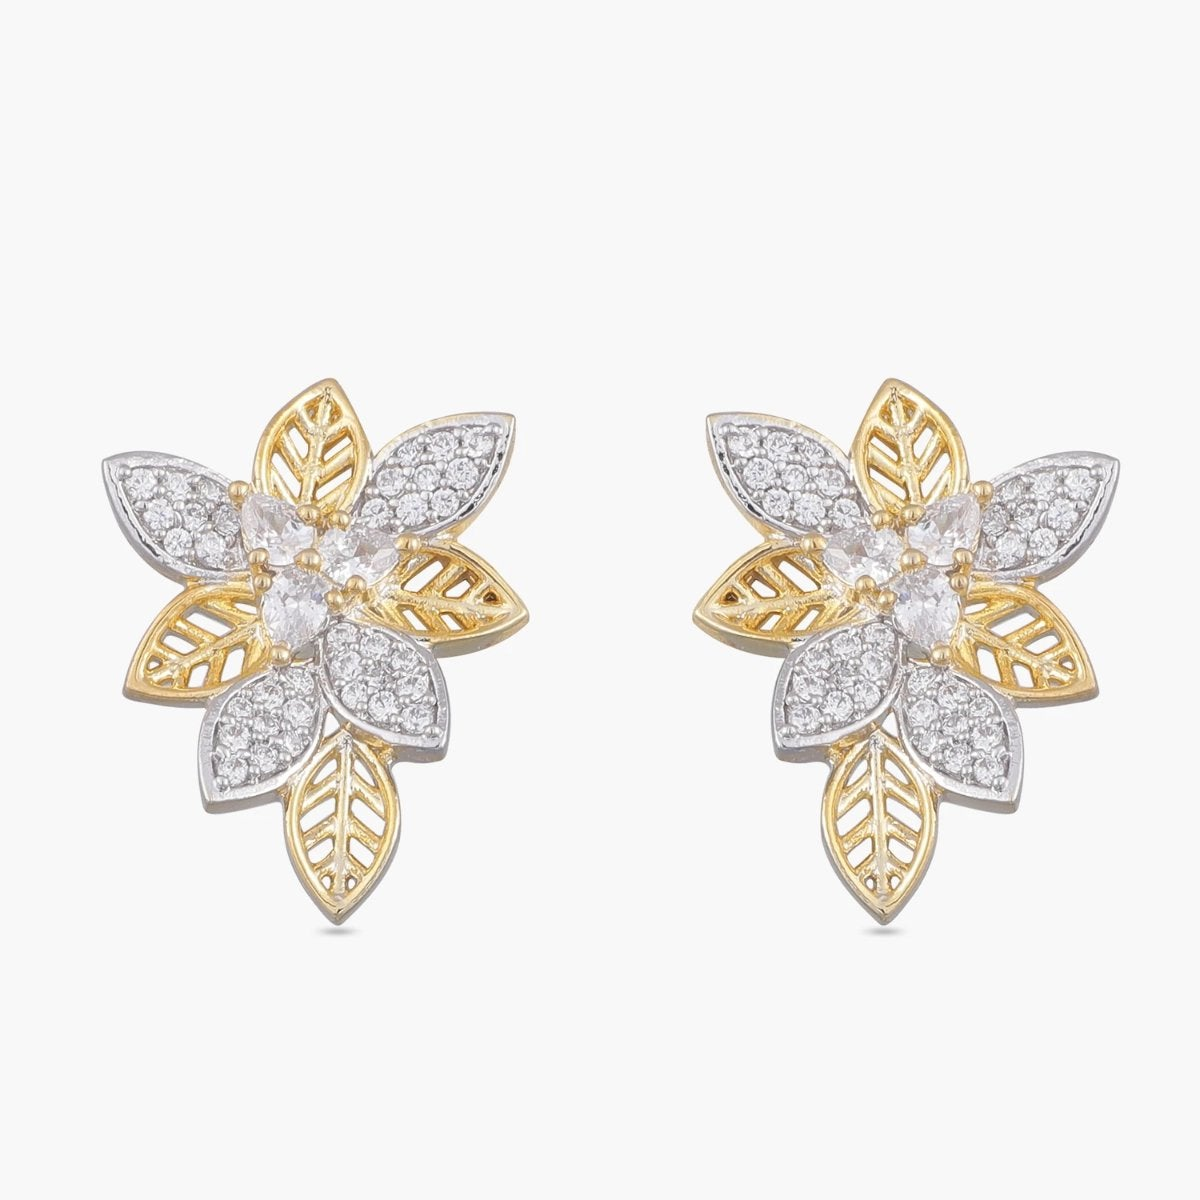 Ava Nakshatra CZ Earrings